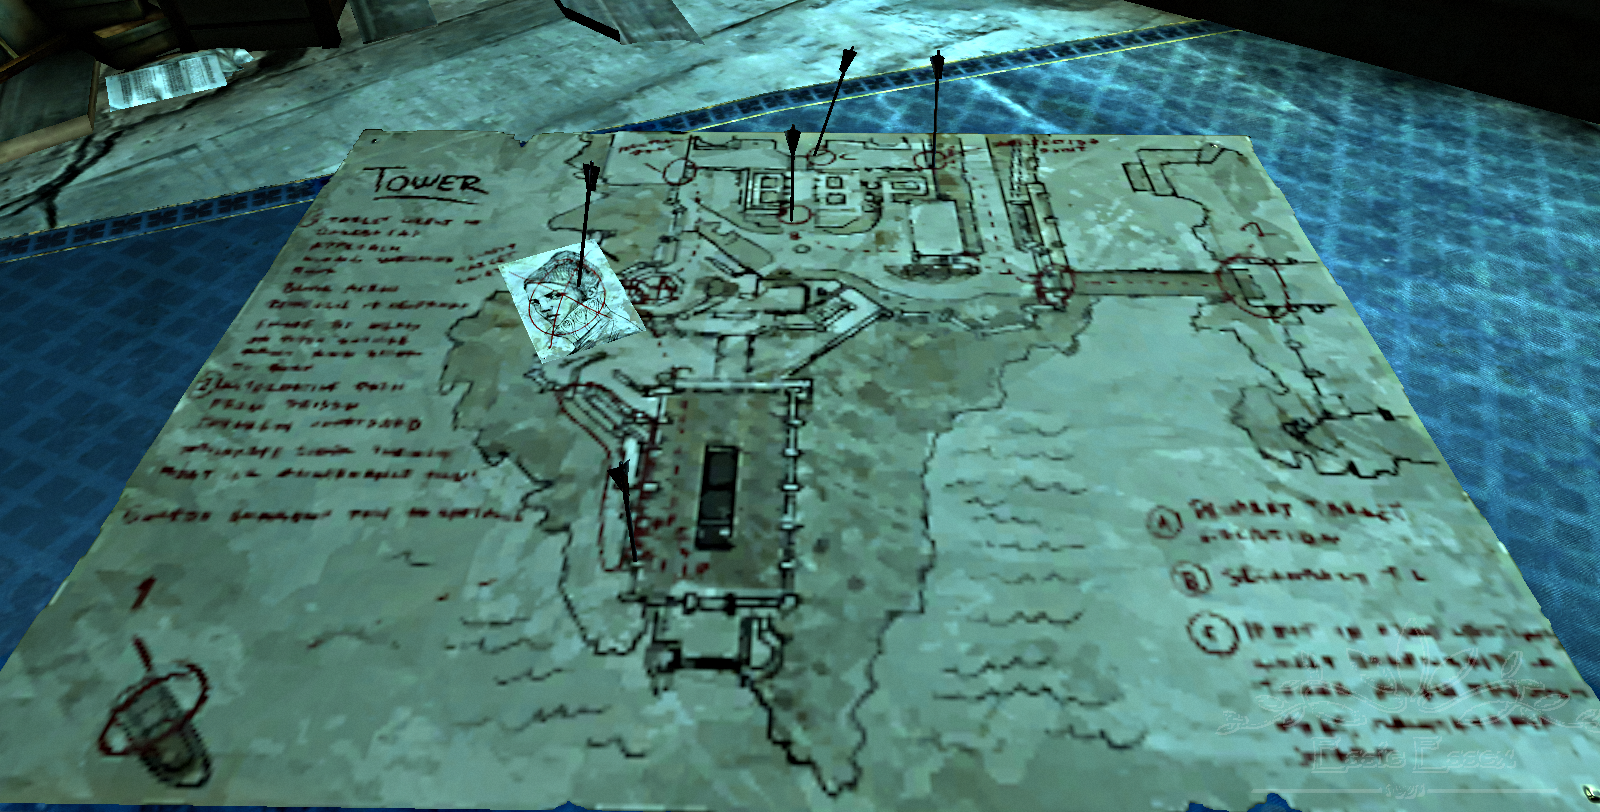 Dishonored Map Www Map Com Umaine Map